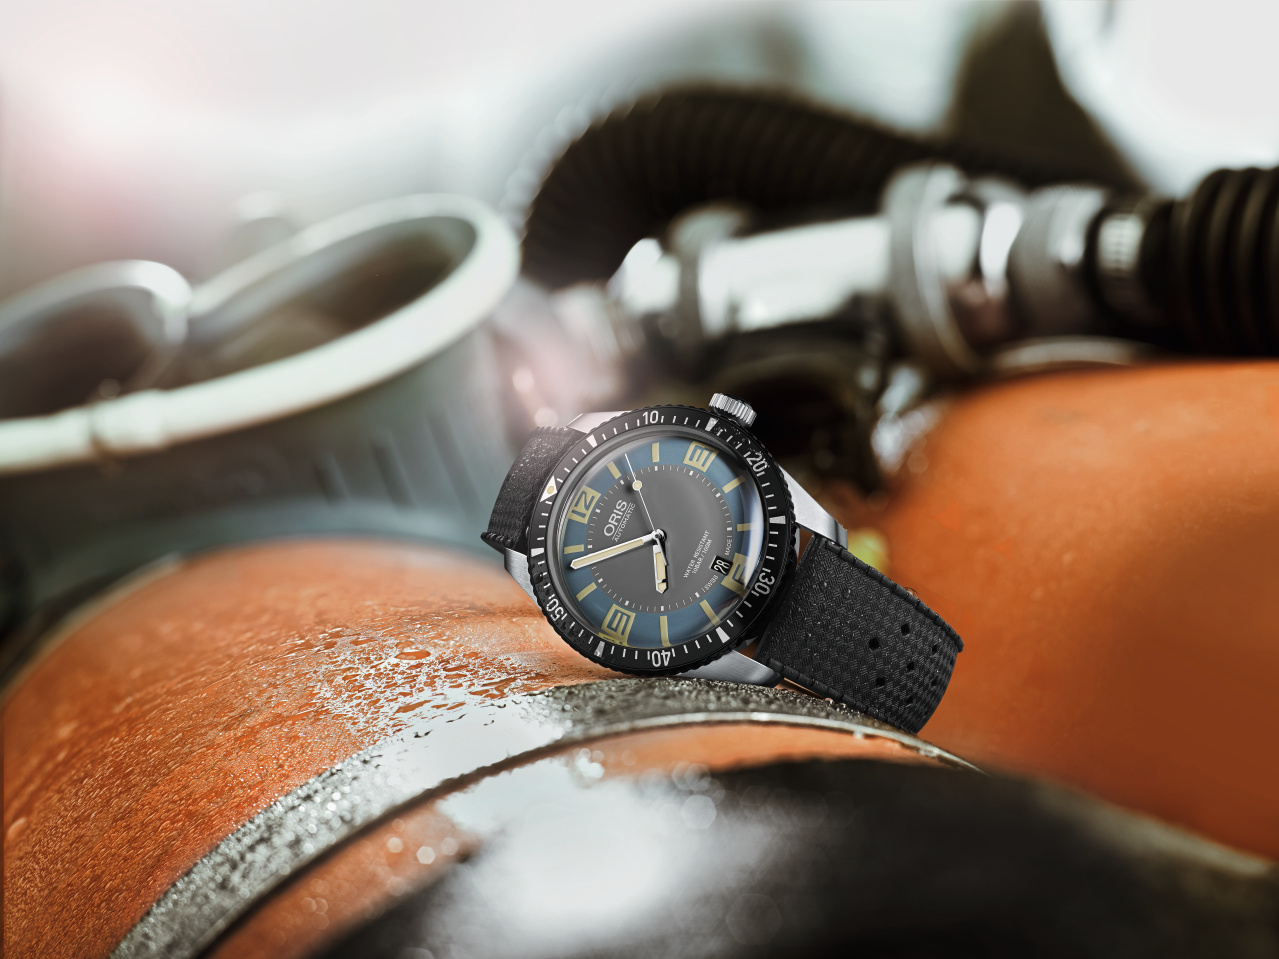 01 733 7707 4065-07 4 20 18 - Oris Divers Sixty-Five_LowRes_4785